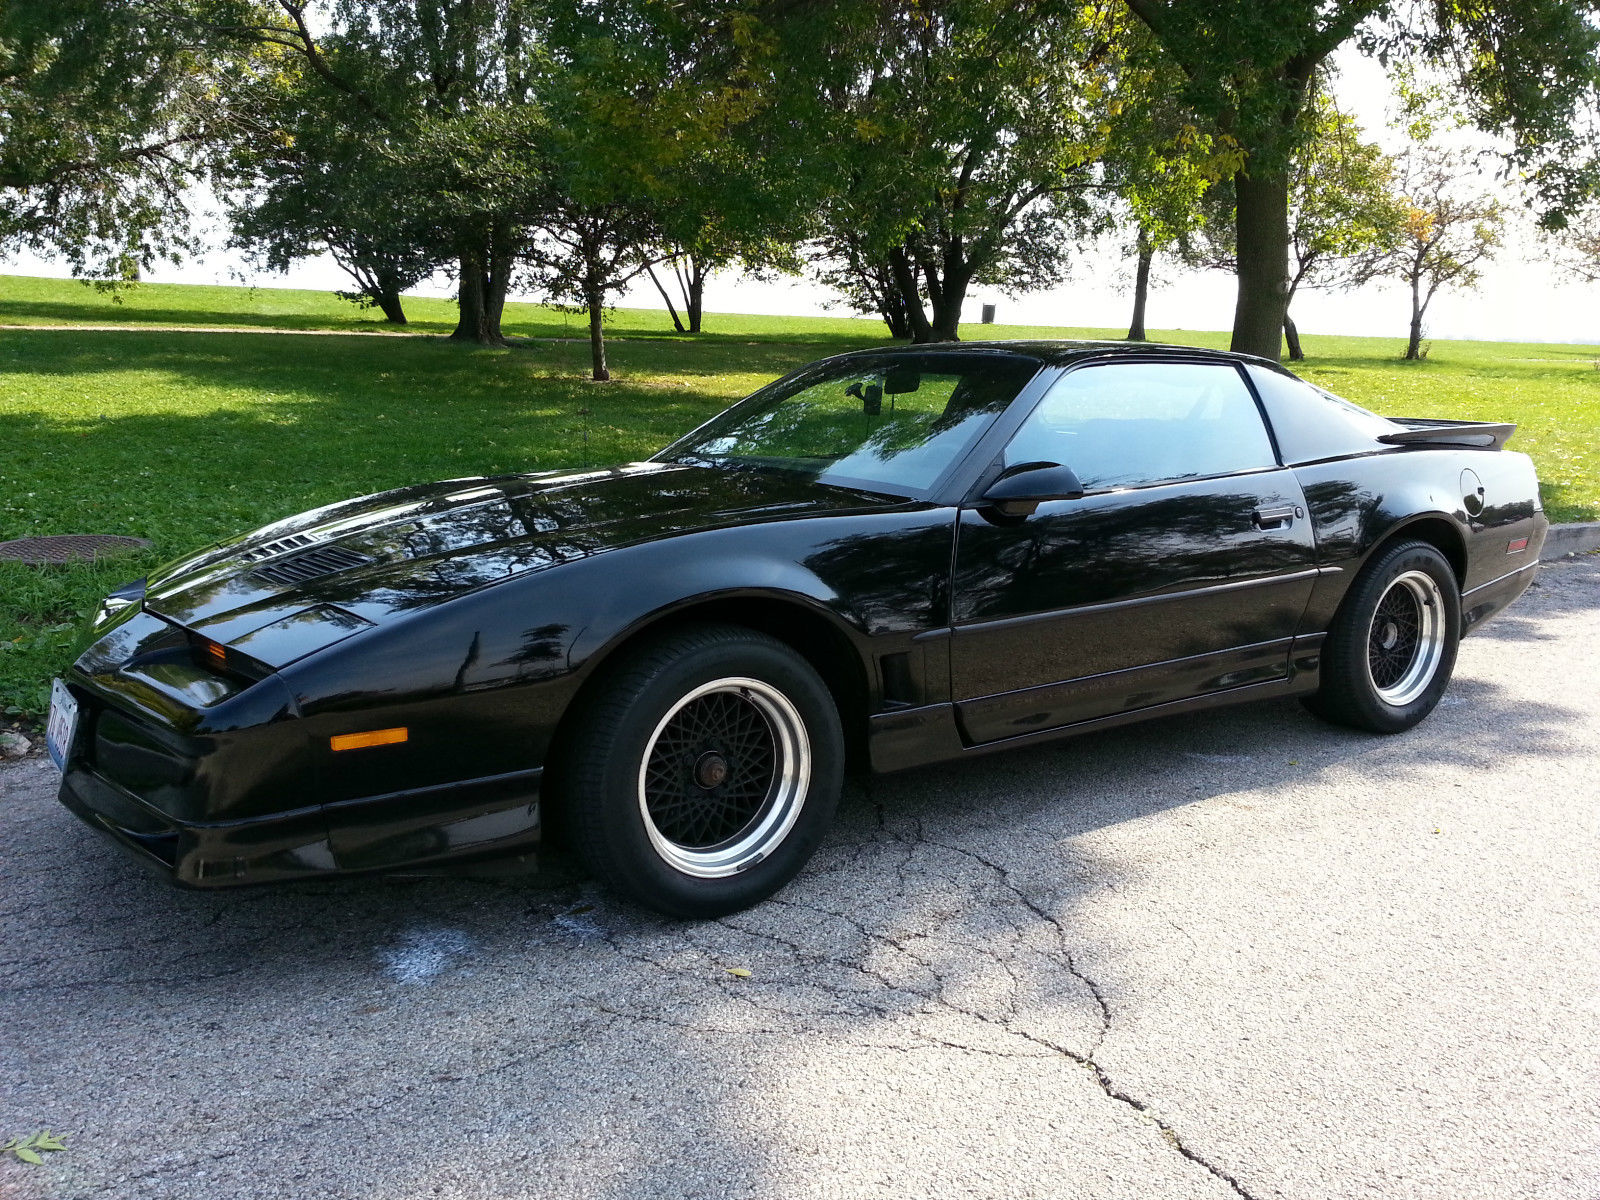 1988 pontiac trans am 5 7l 350 ci vortech v1 super. Black Bedroom Furniture Sets. Home Design Ideas